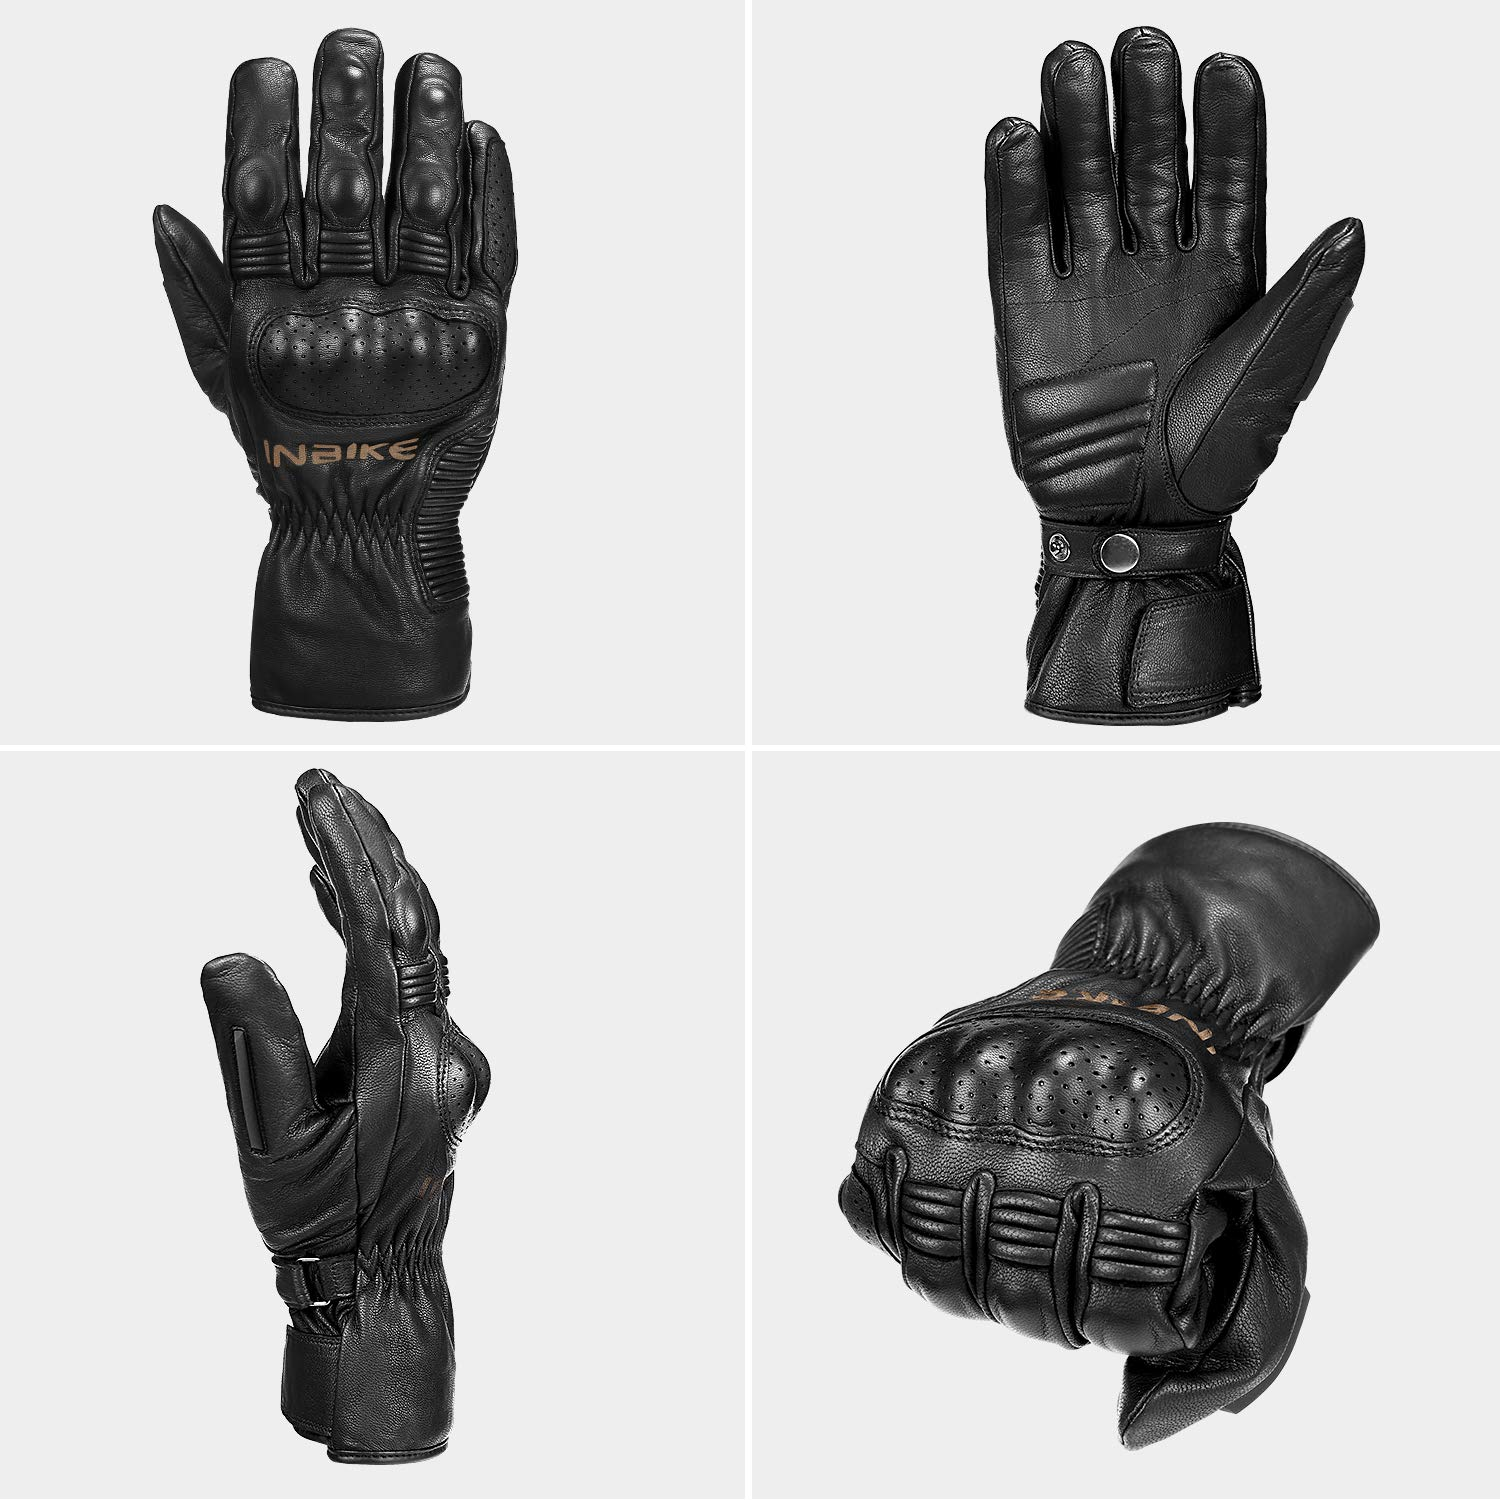 INBIKE Winter Leather Motorcycle Gloves Waterproof Warm Motorbike ATV Biking Riding for Men Hard Knuckle Protection Goatskin